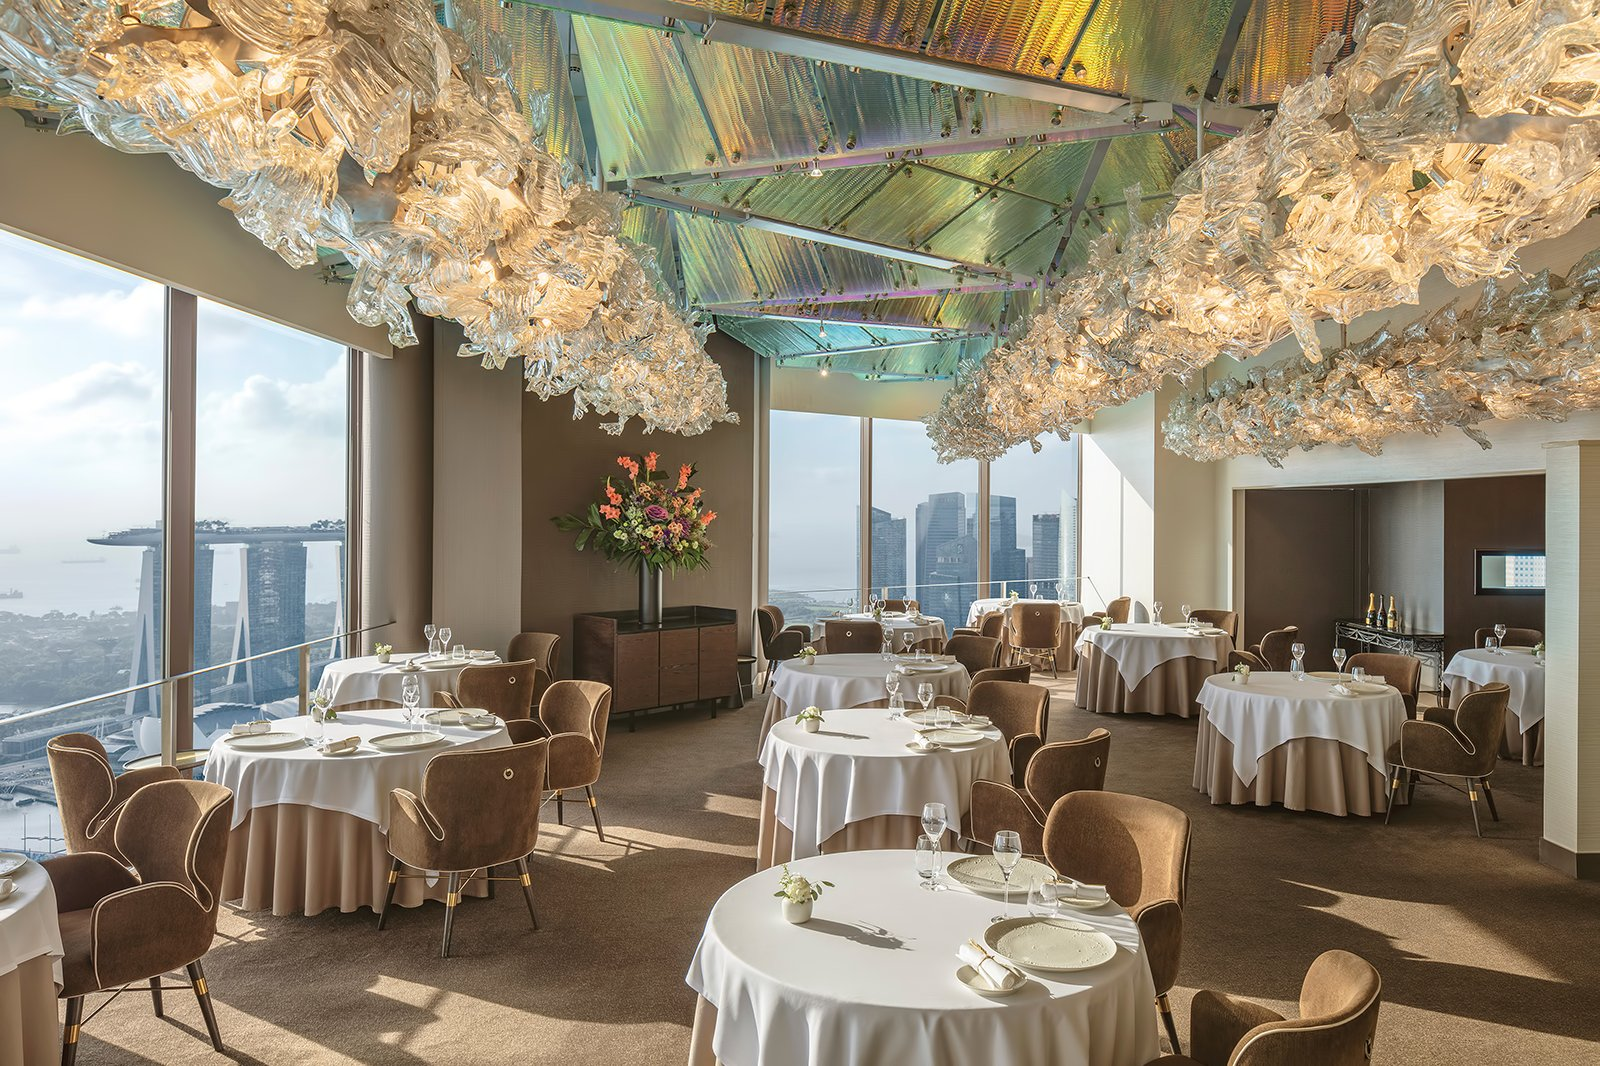 21 Best Restaurants at Marina Bay - The Best Places to Eat at Marina ...